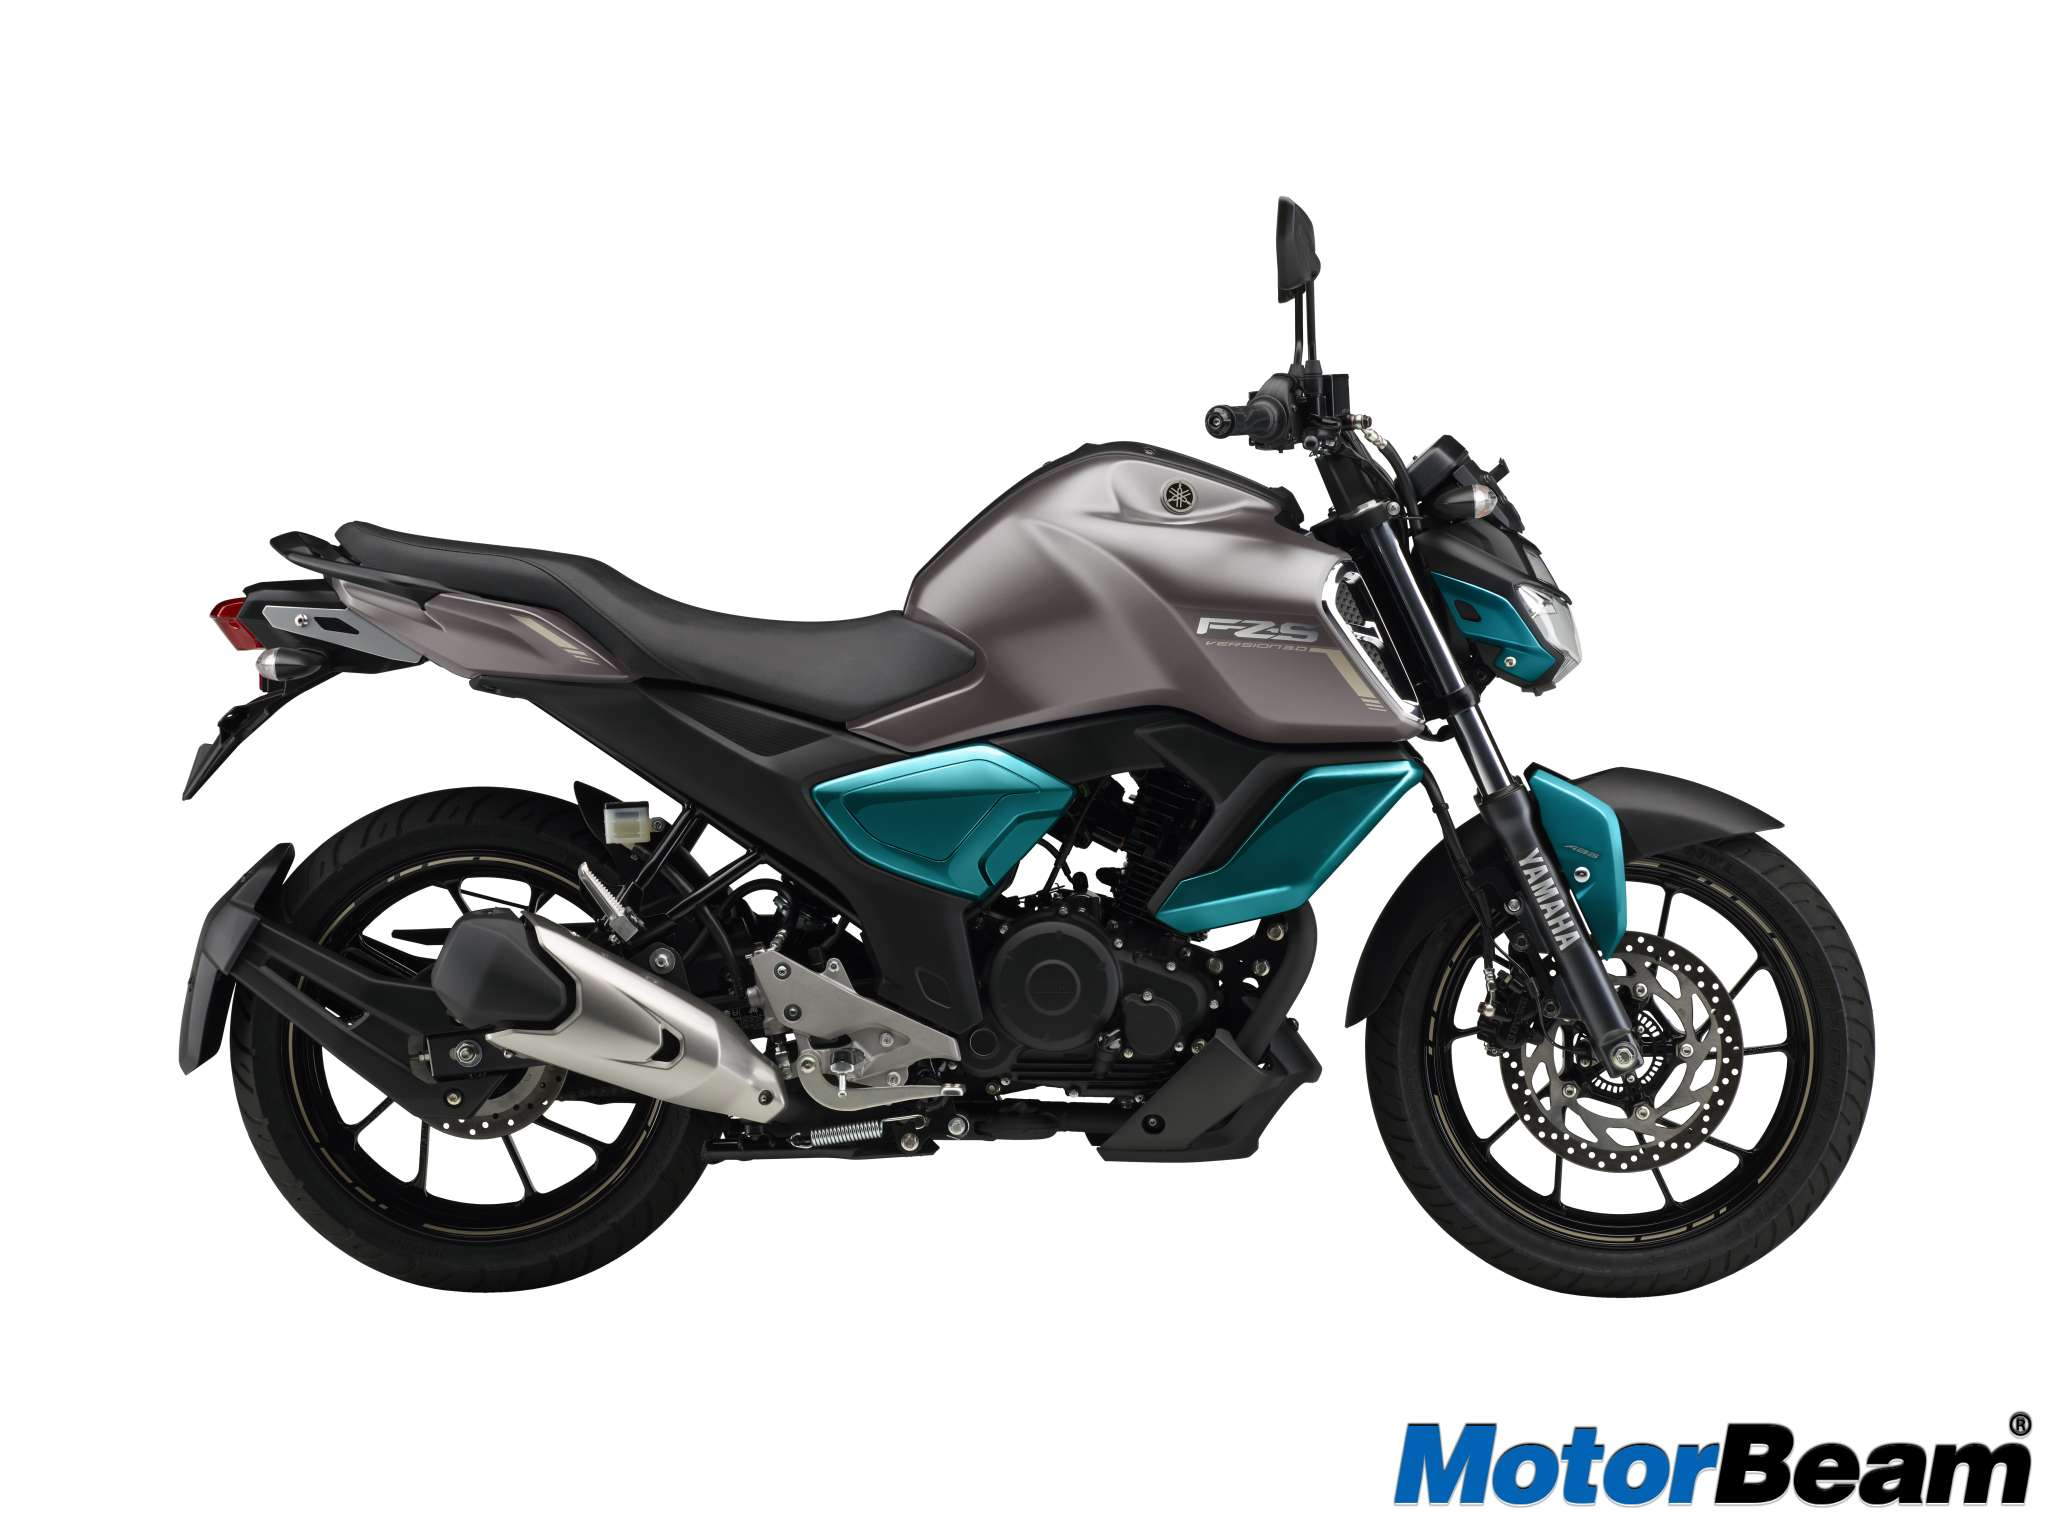 Yamaha FZ-S V3.0 Warna Grey Cyan Blue